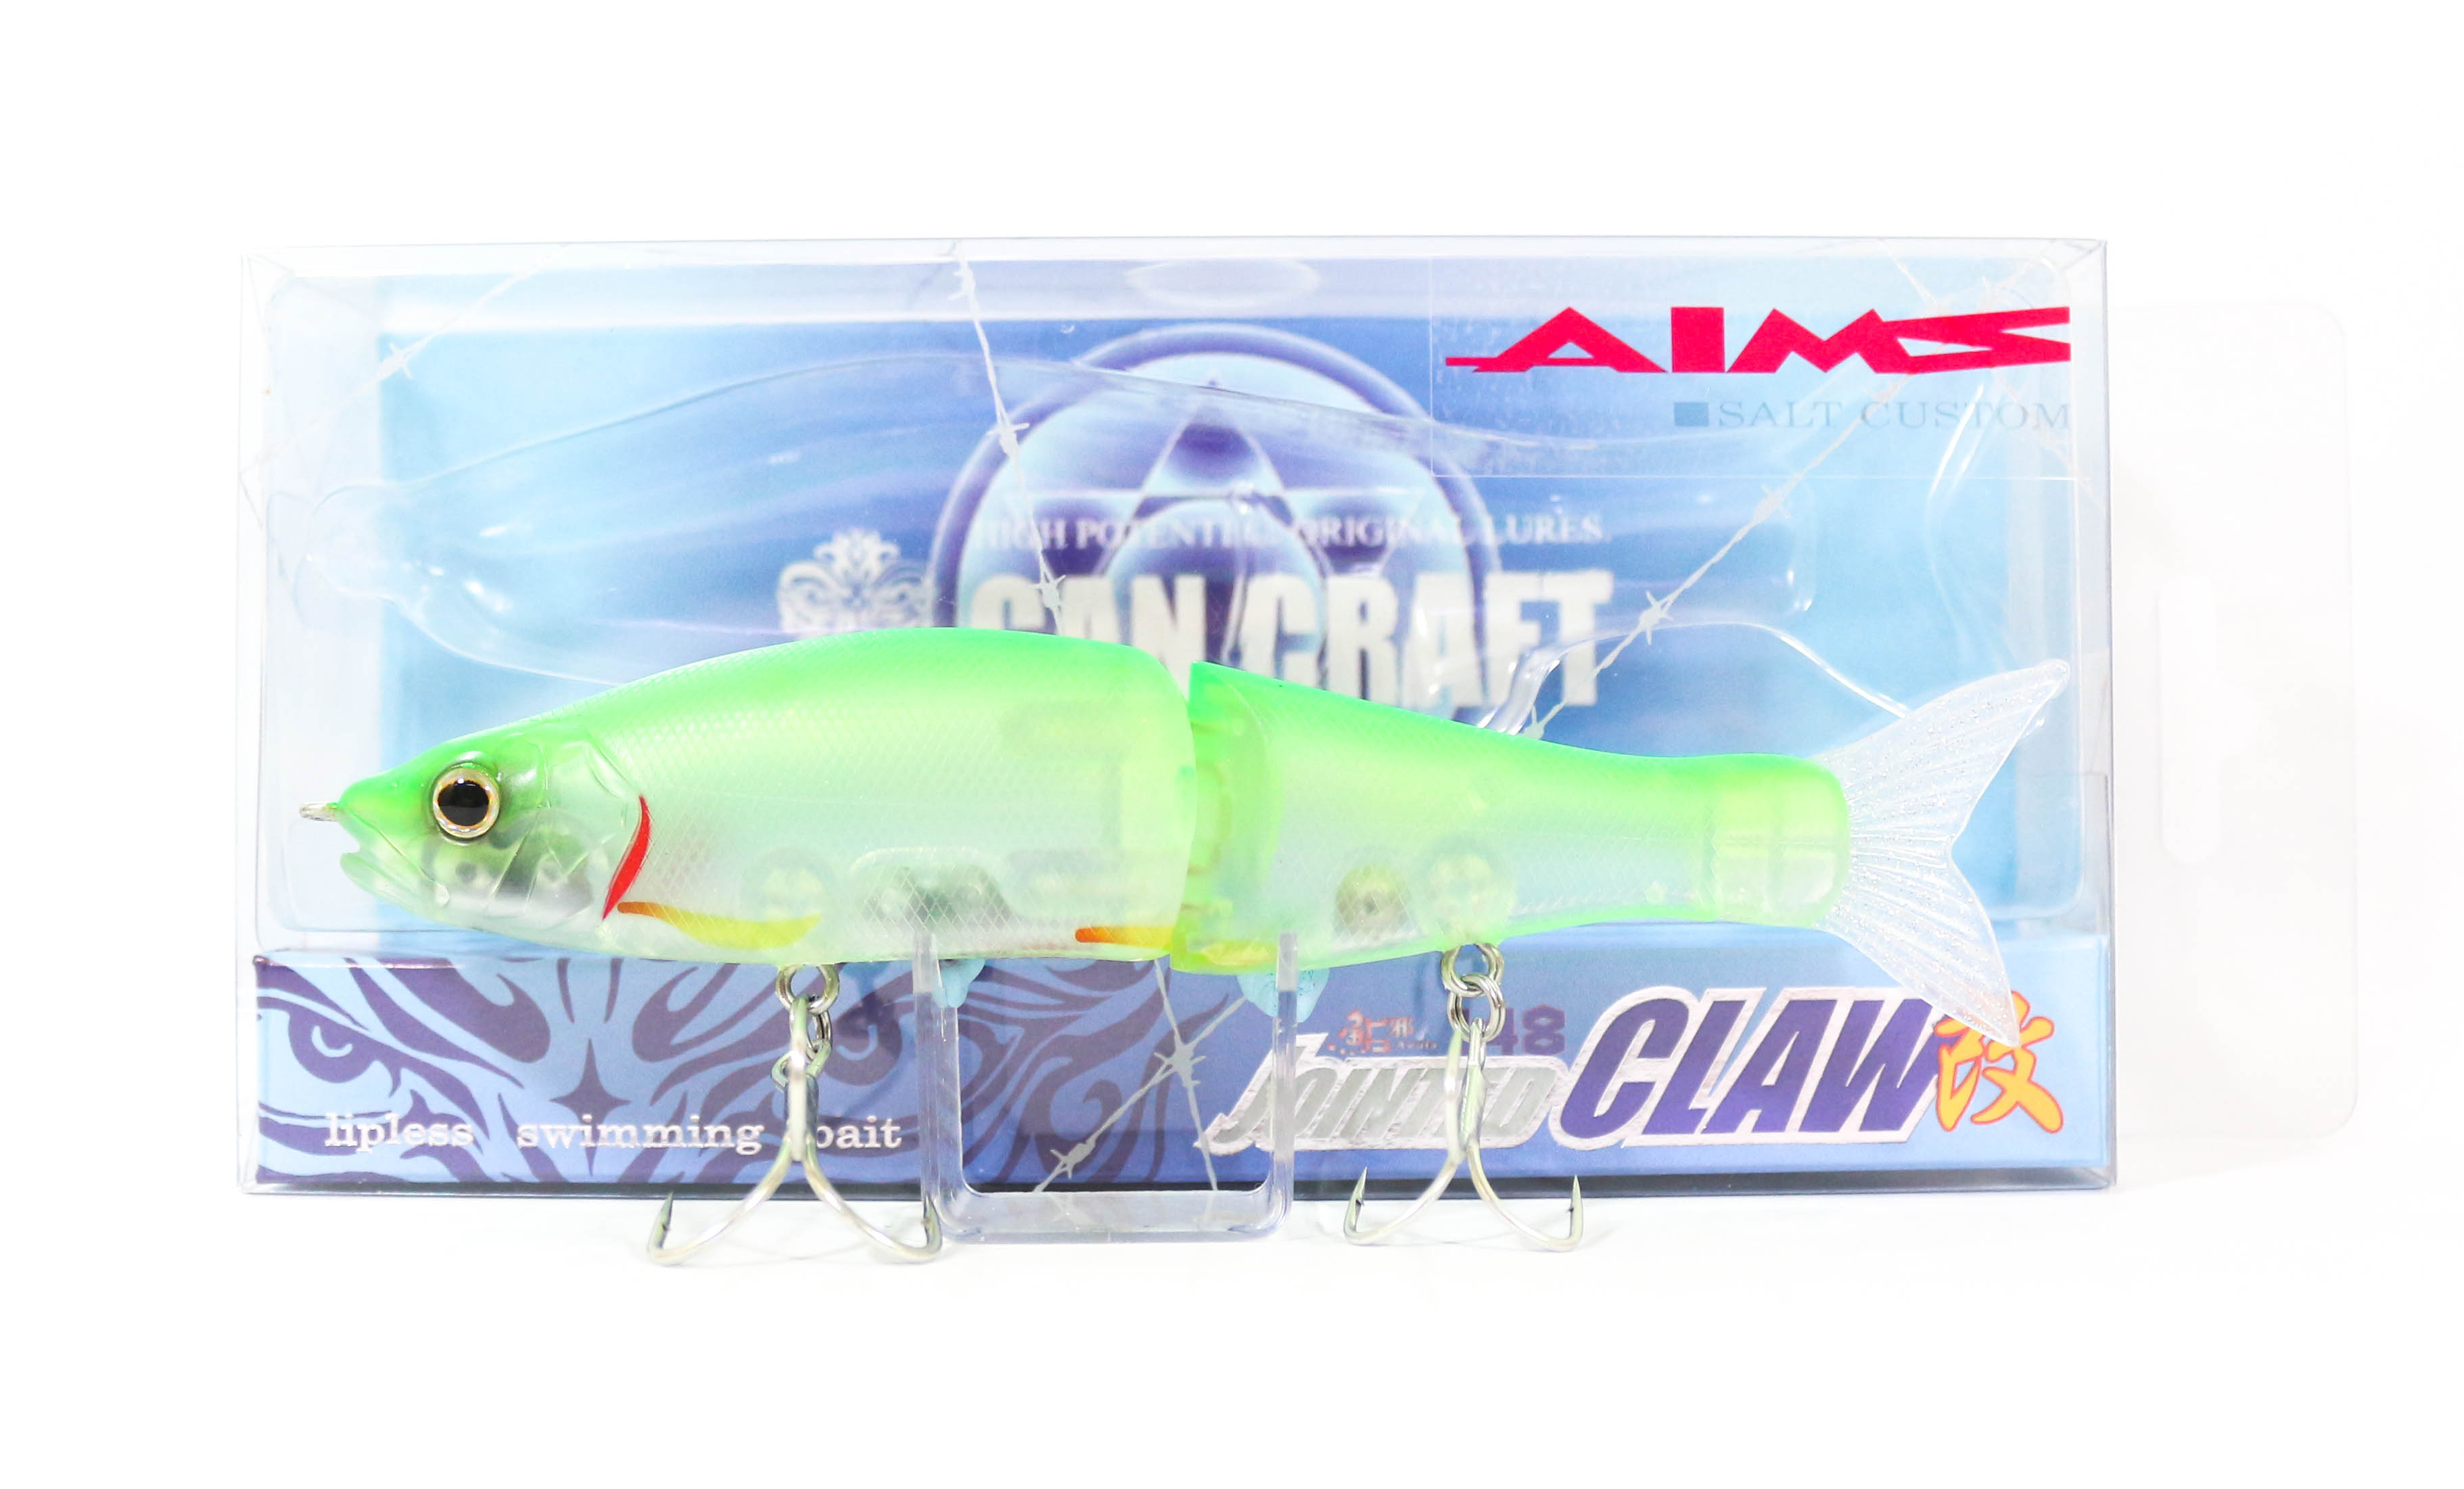 Gan Craft Jointed Claw 148S Salt Floating Jointed Lure AS-13 (0137)